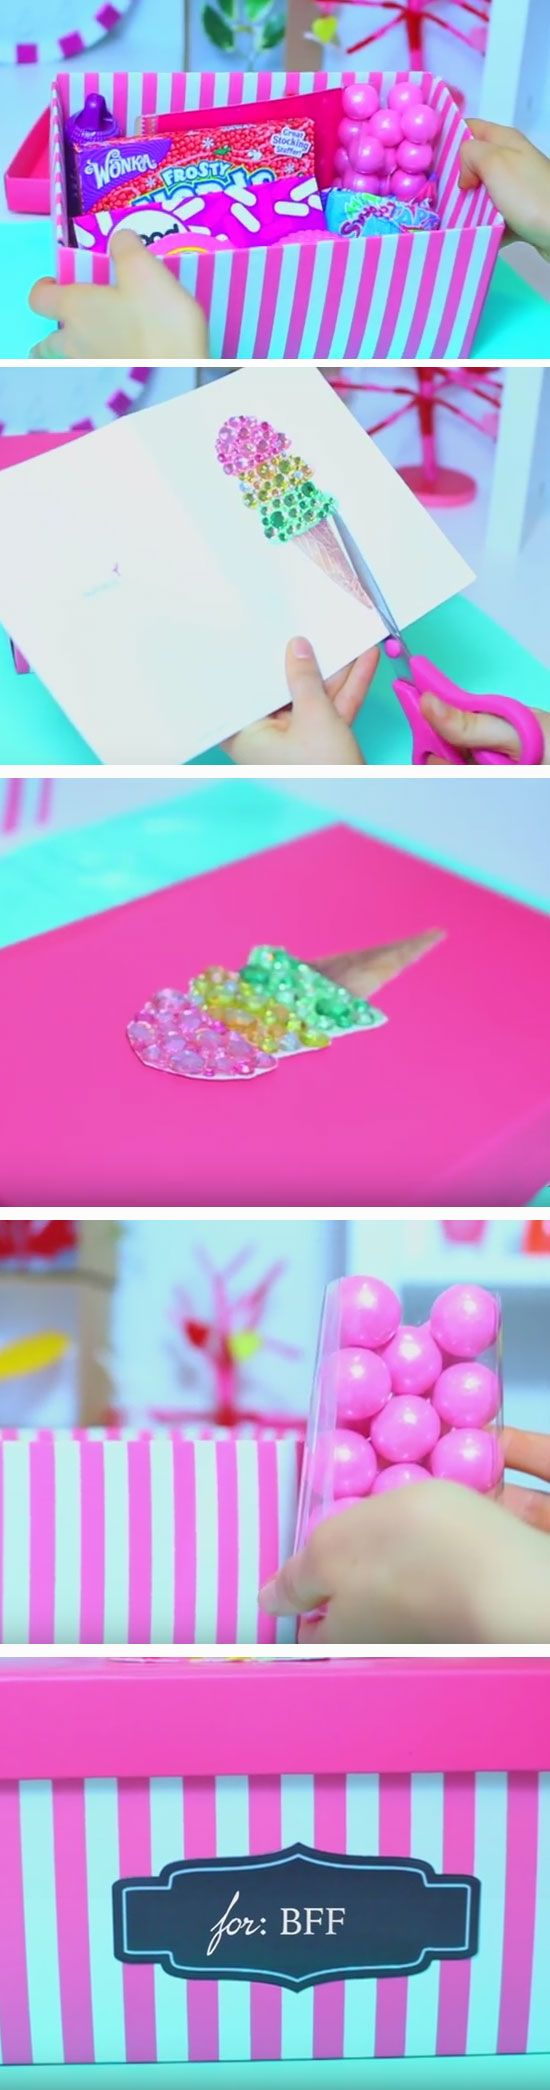 Cute Candy Box | 35 + DIY Christmas Gifts for Teen Girls